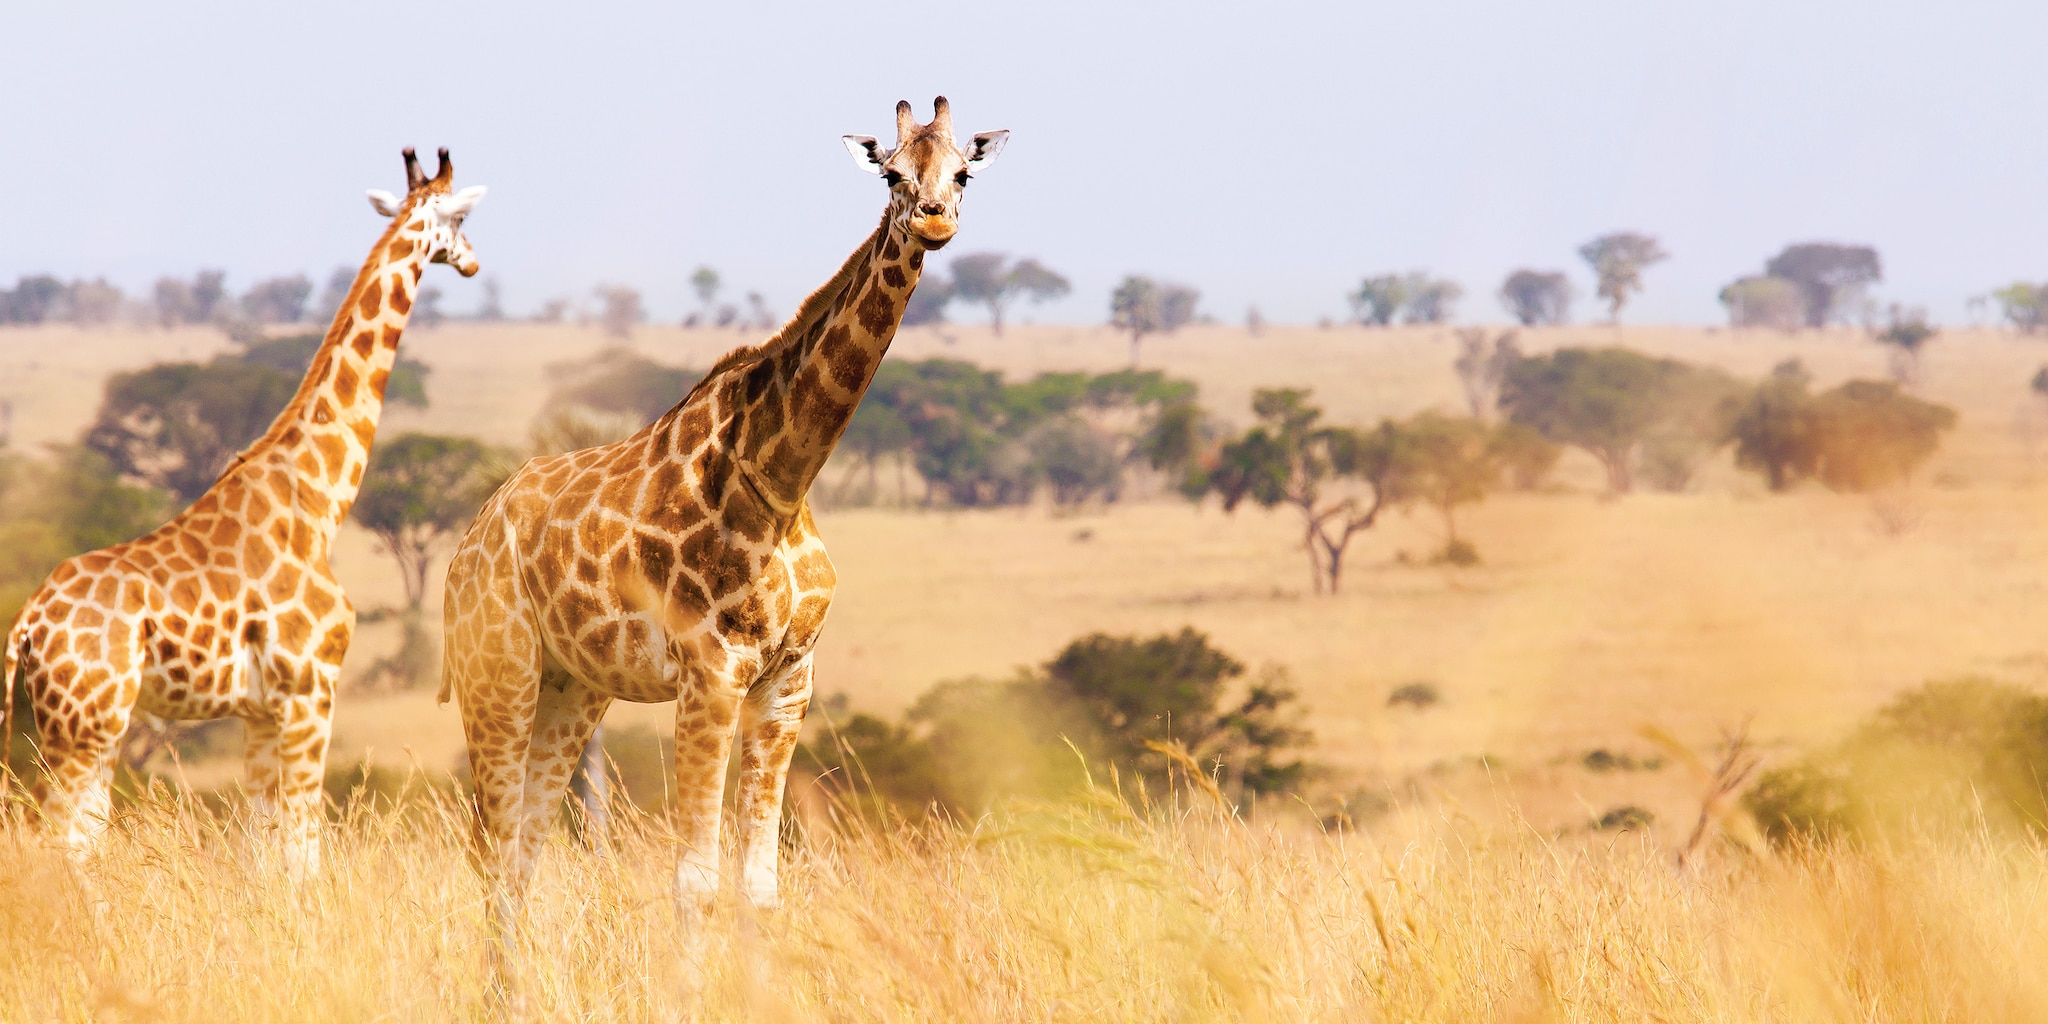 A pair of giraffes look out onto the South African bush